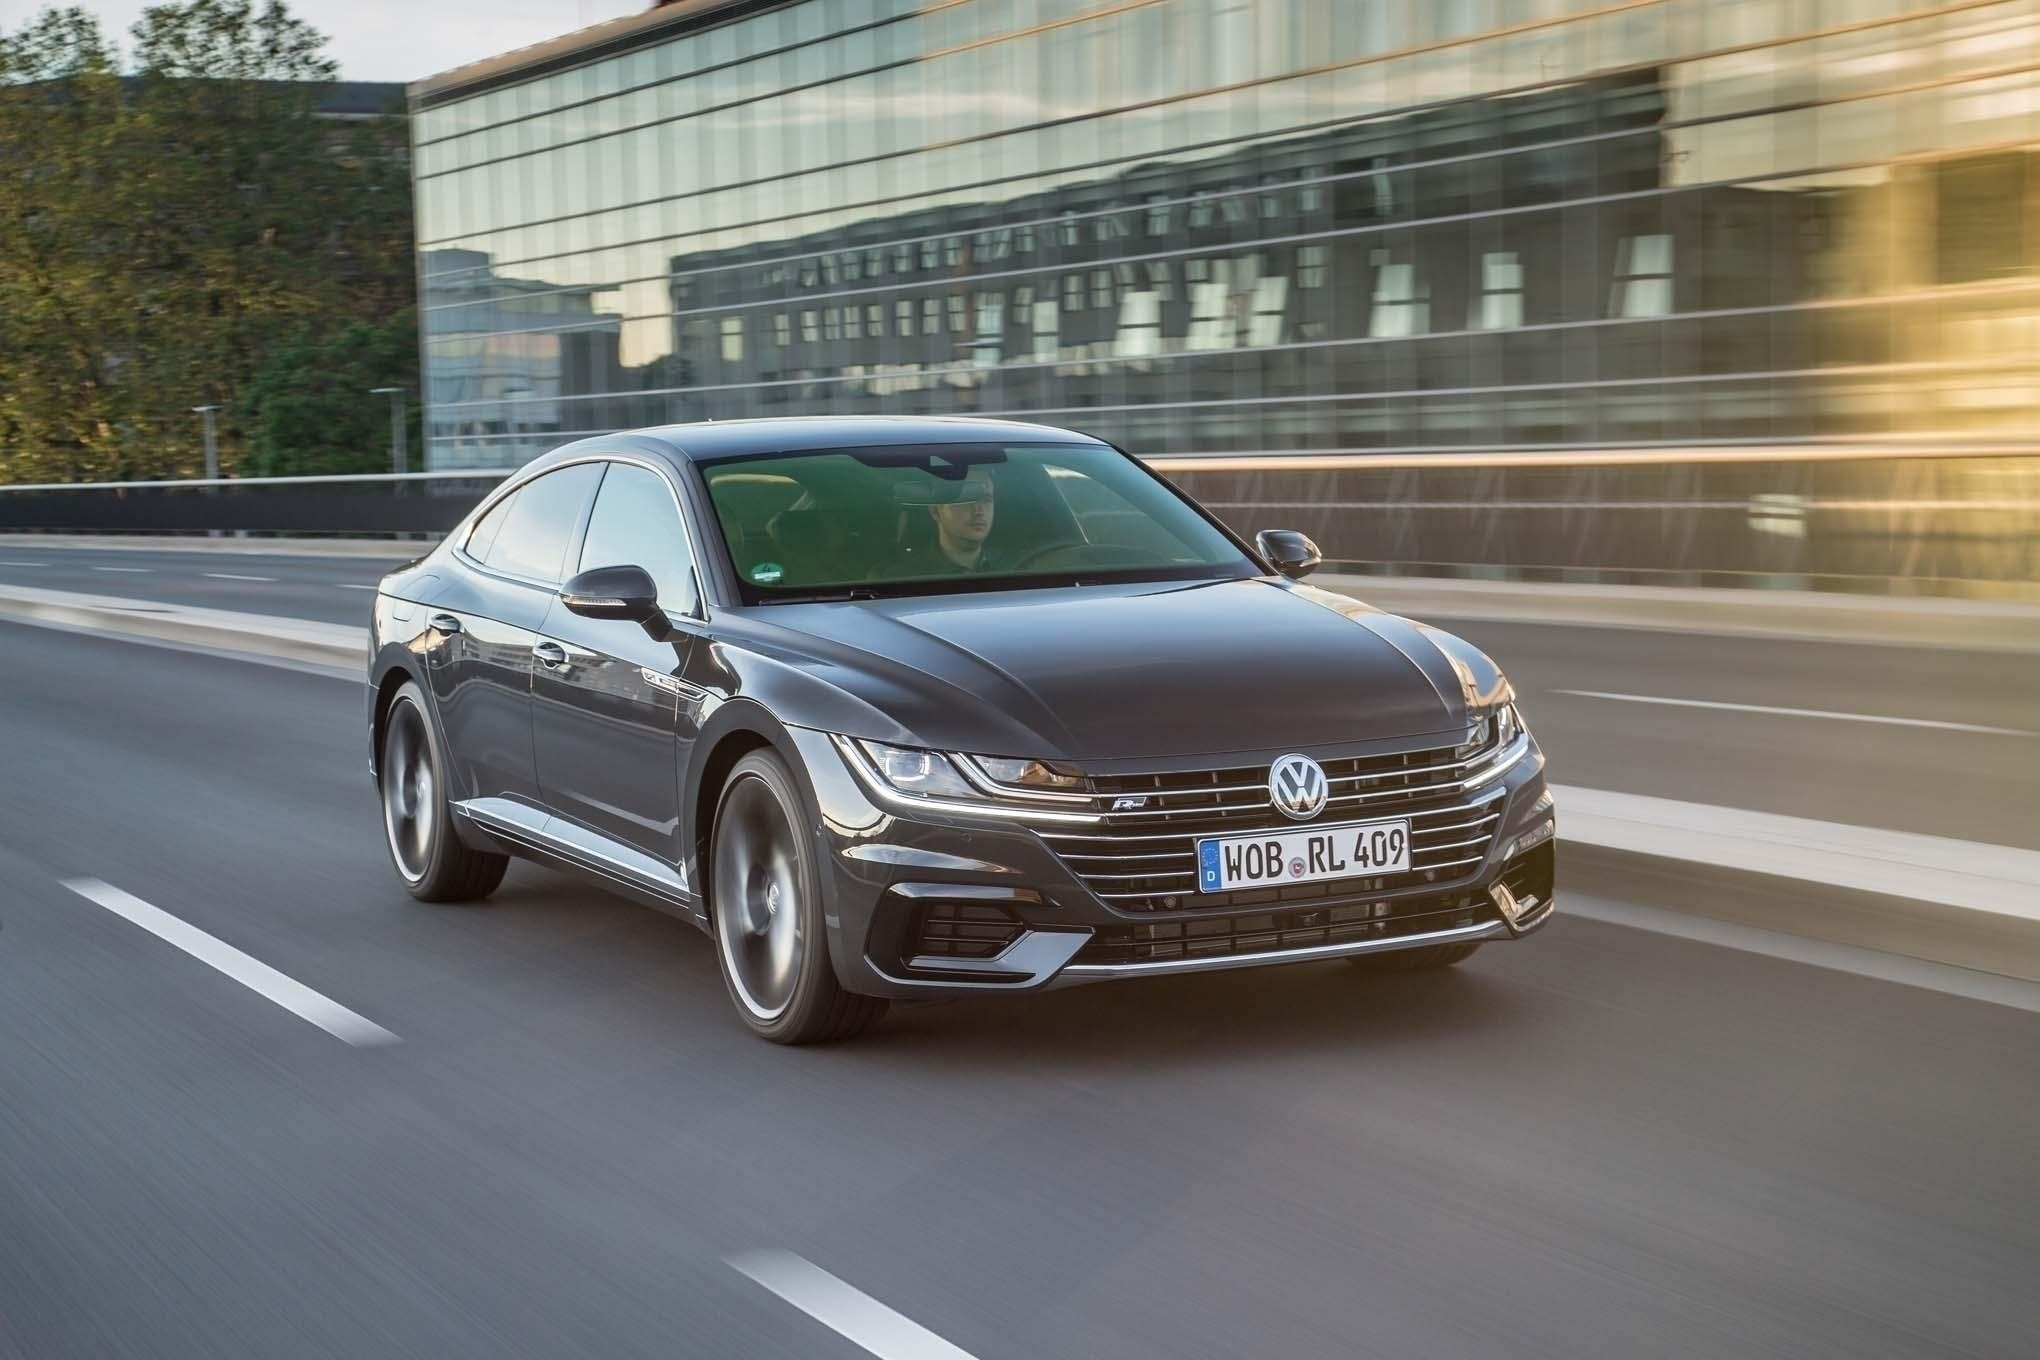 37 New Next Generation Vw Cc Specs and Review